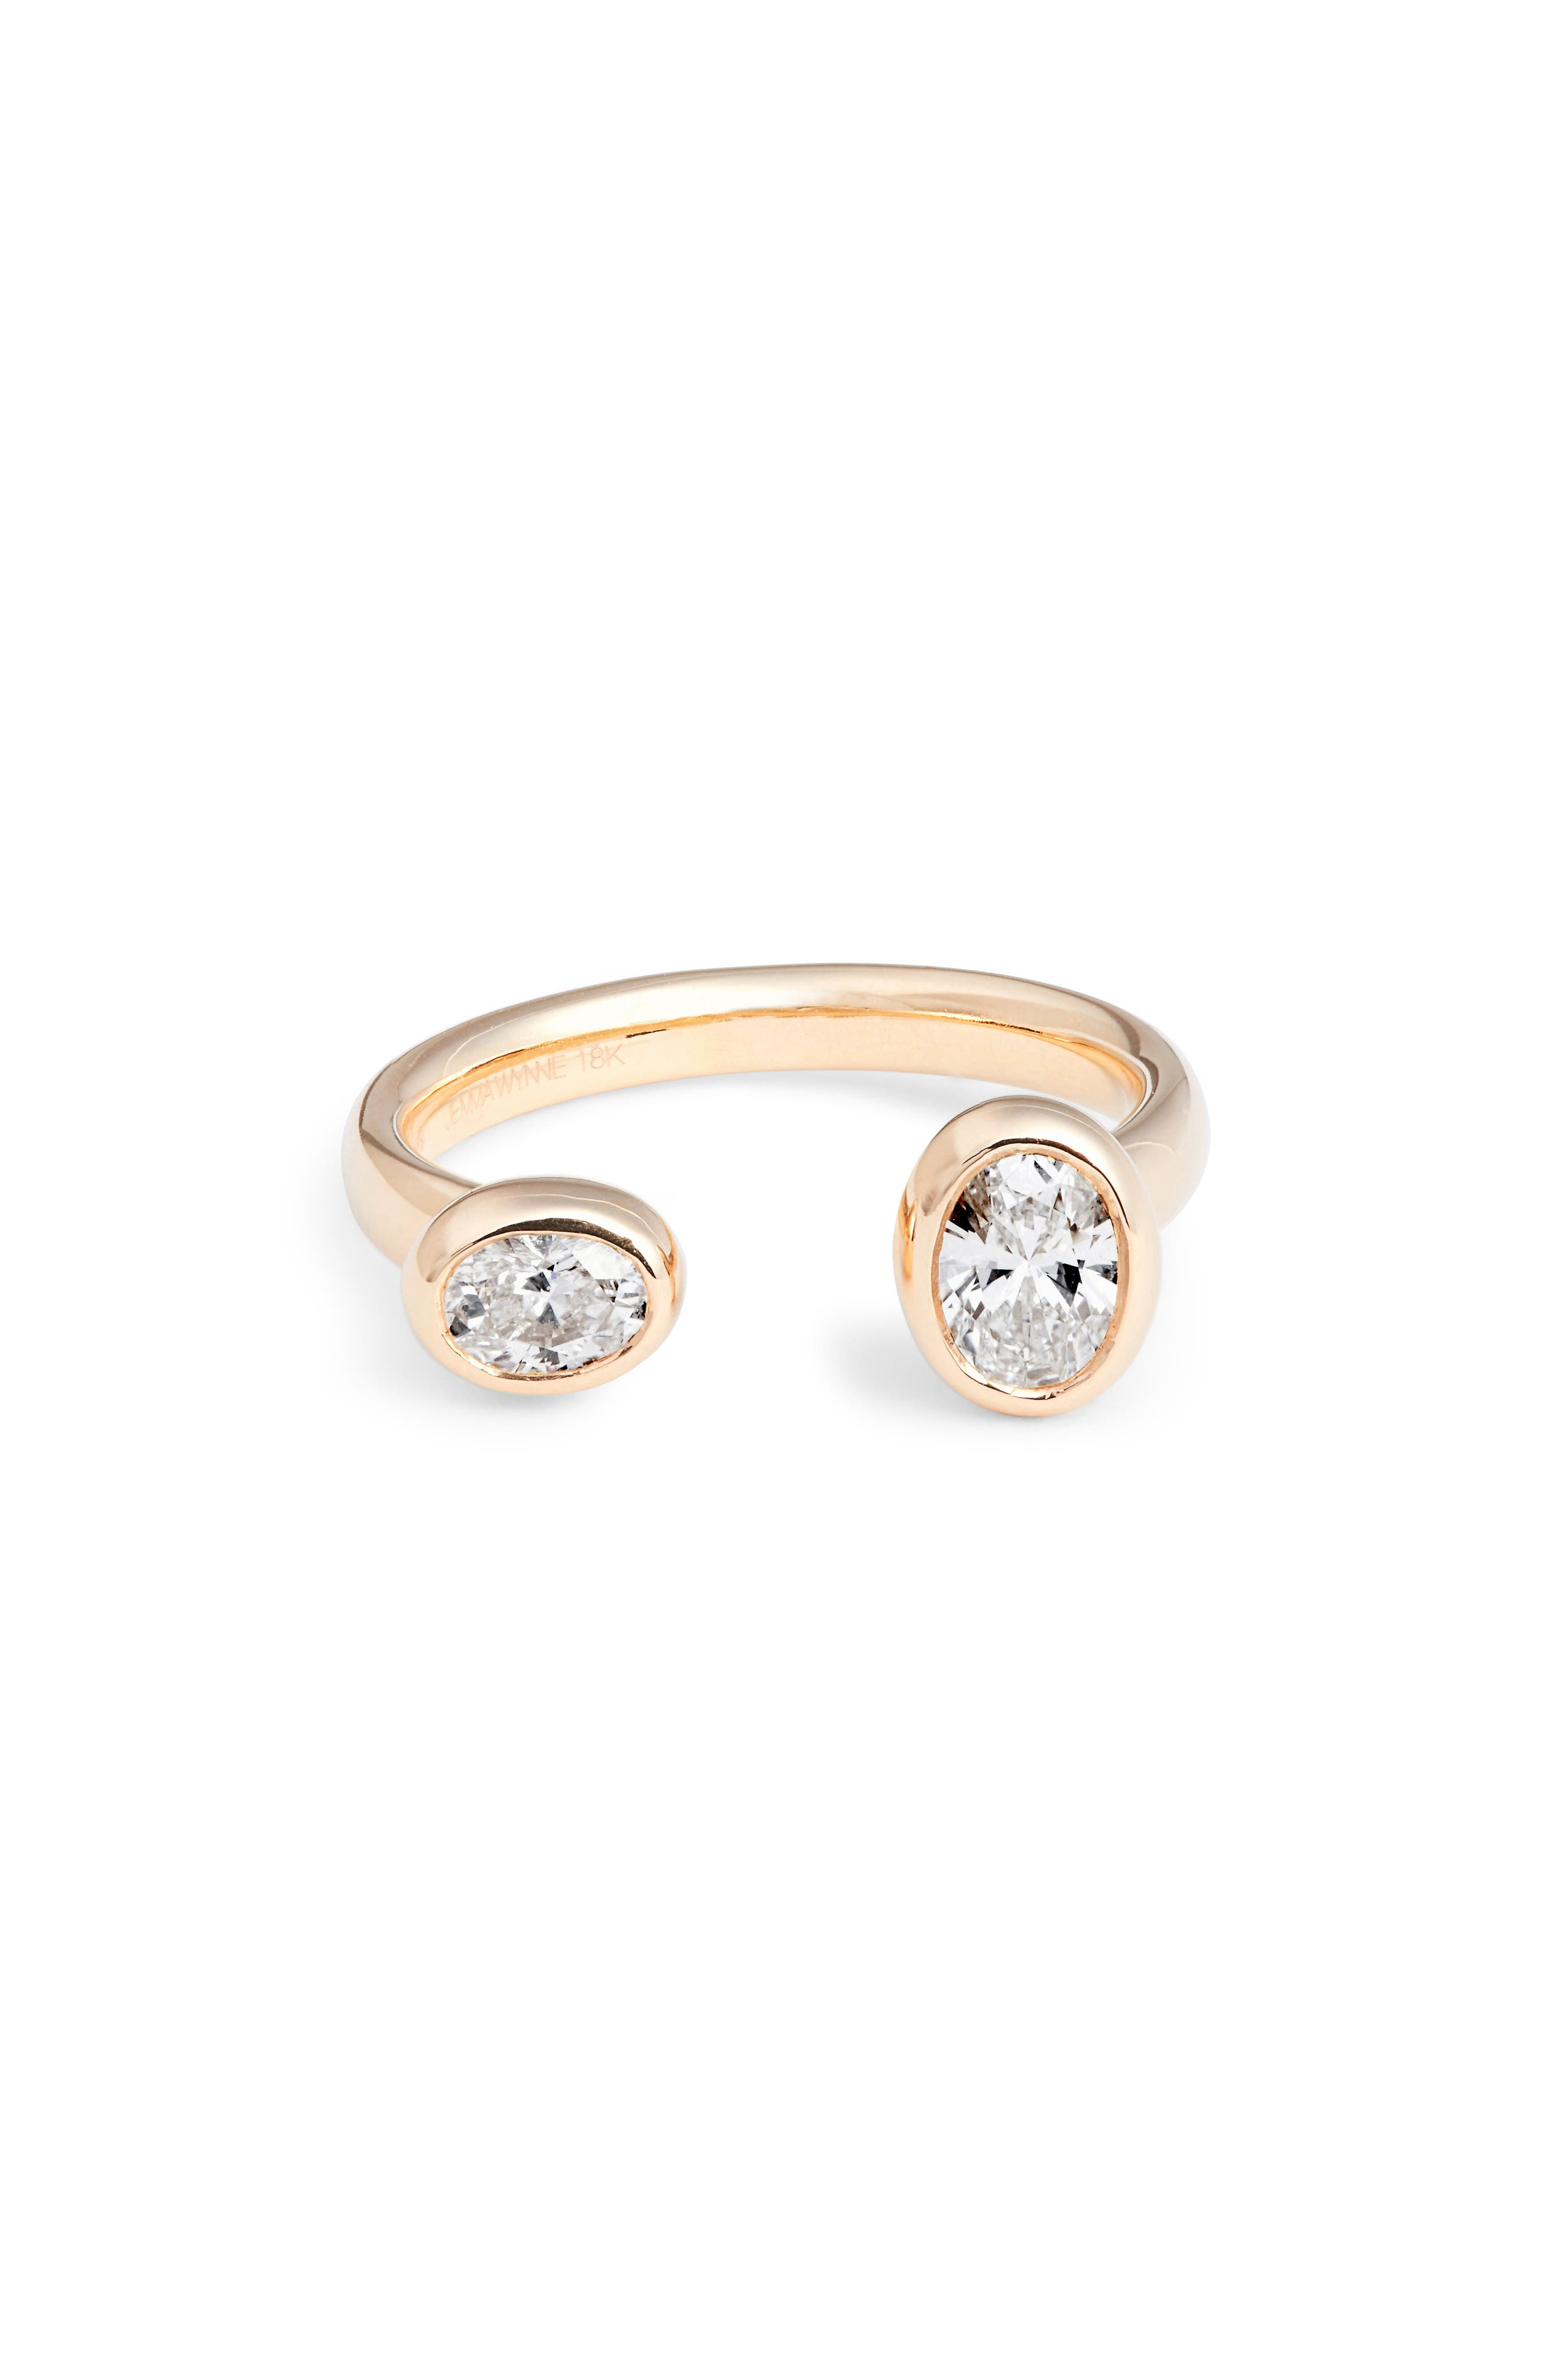 Main Image - Jemma Wynne Prive Diamond Open Ring